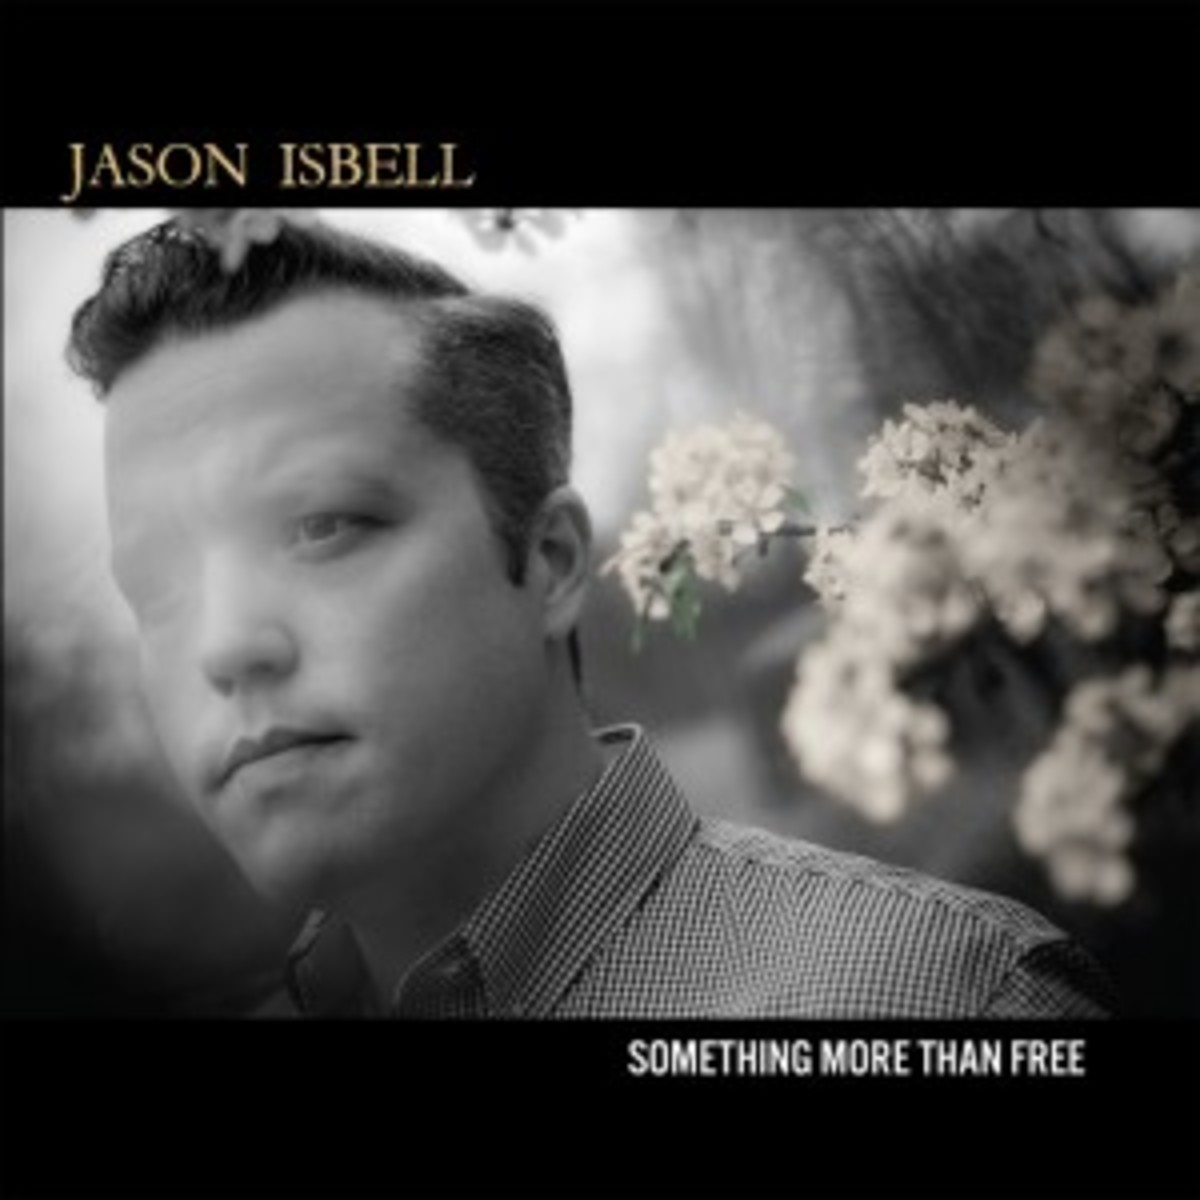 jason-isbel